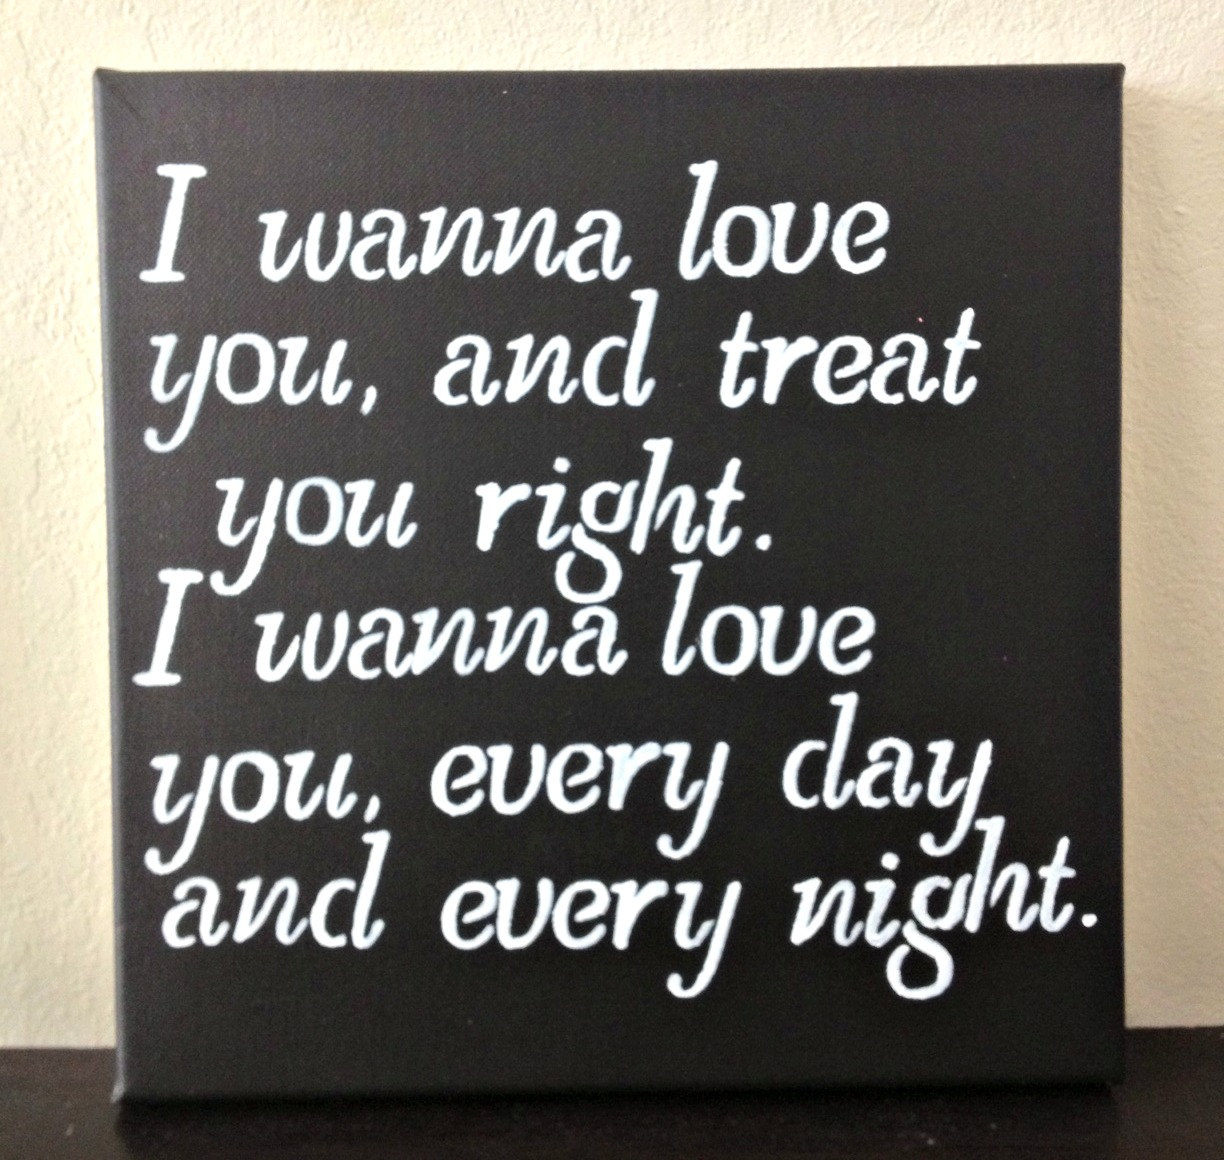 Love Quotes About Life: Bob Marley Quotes About Love. QuotesGram